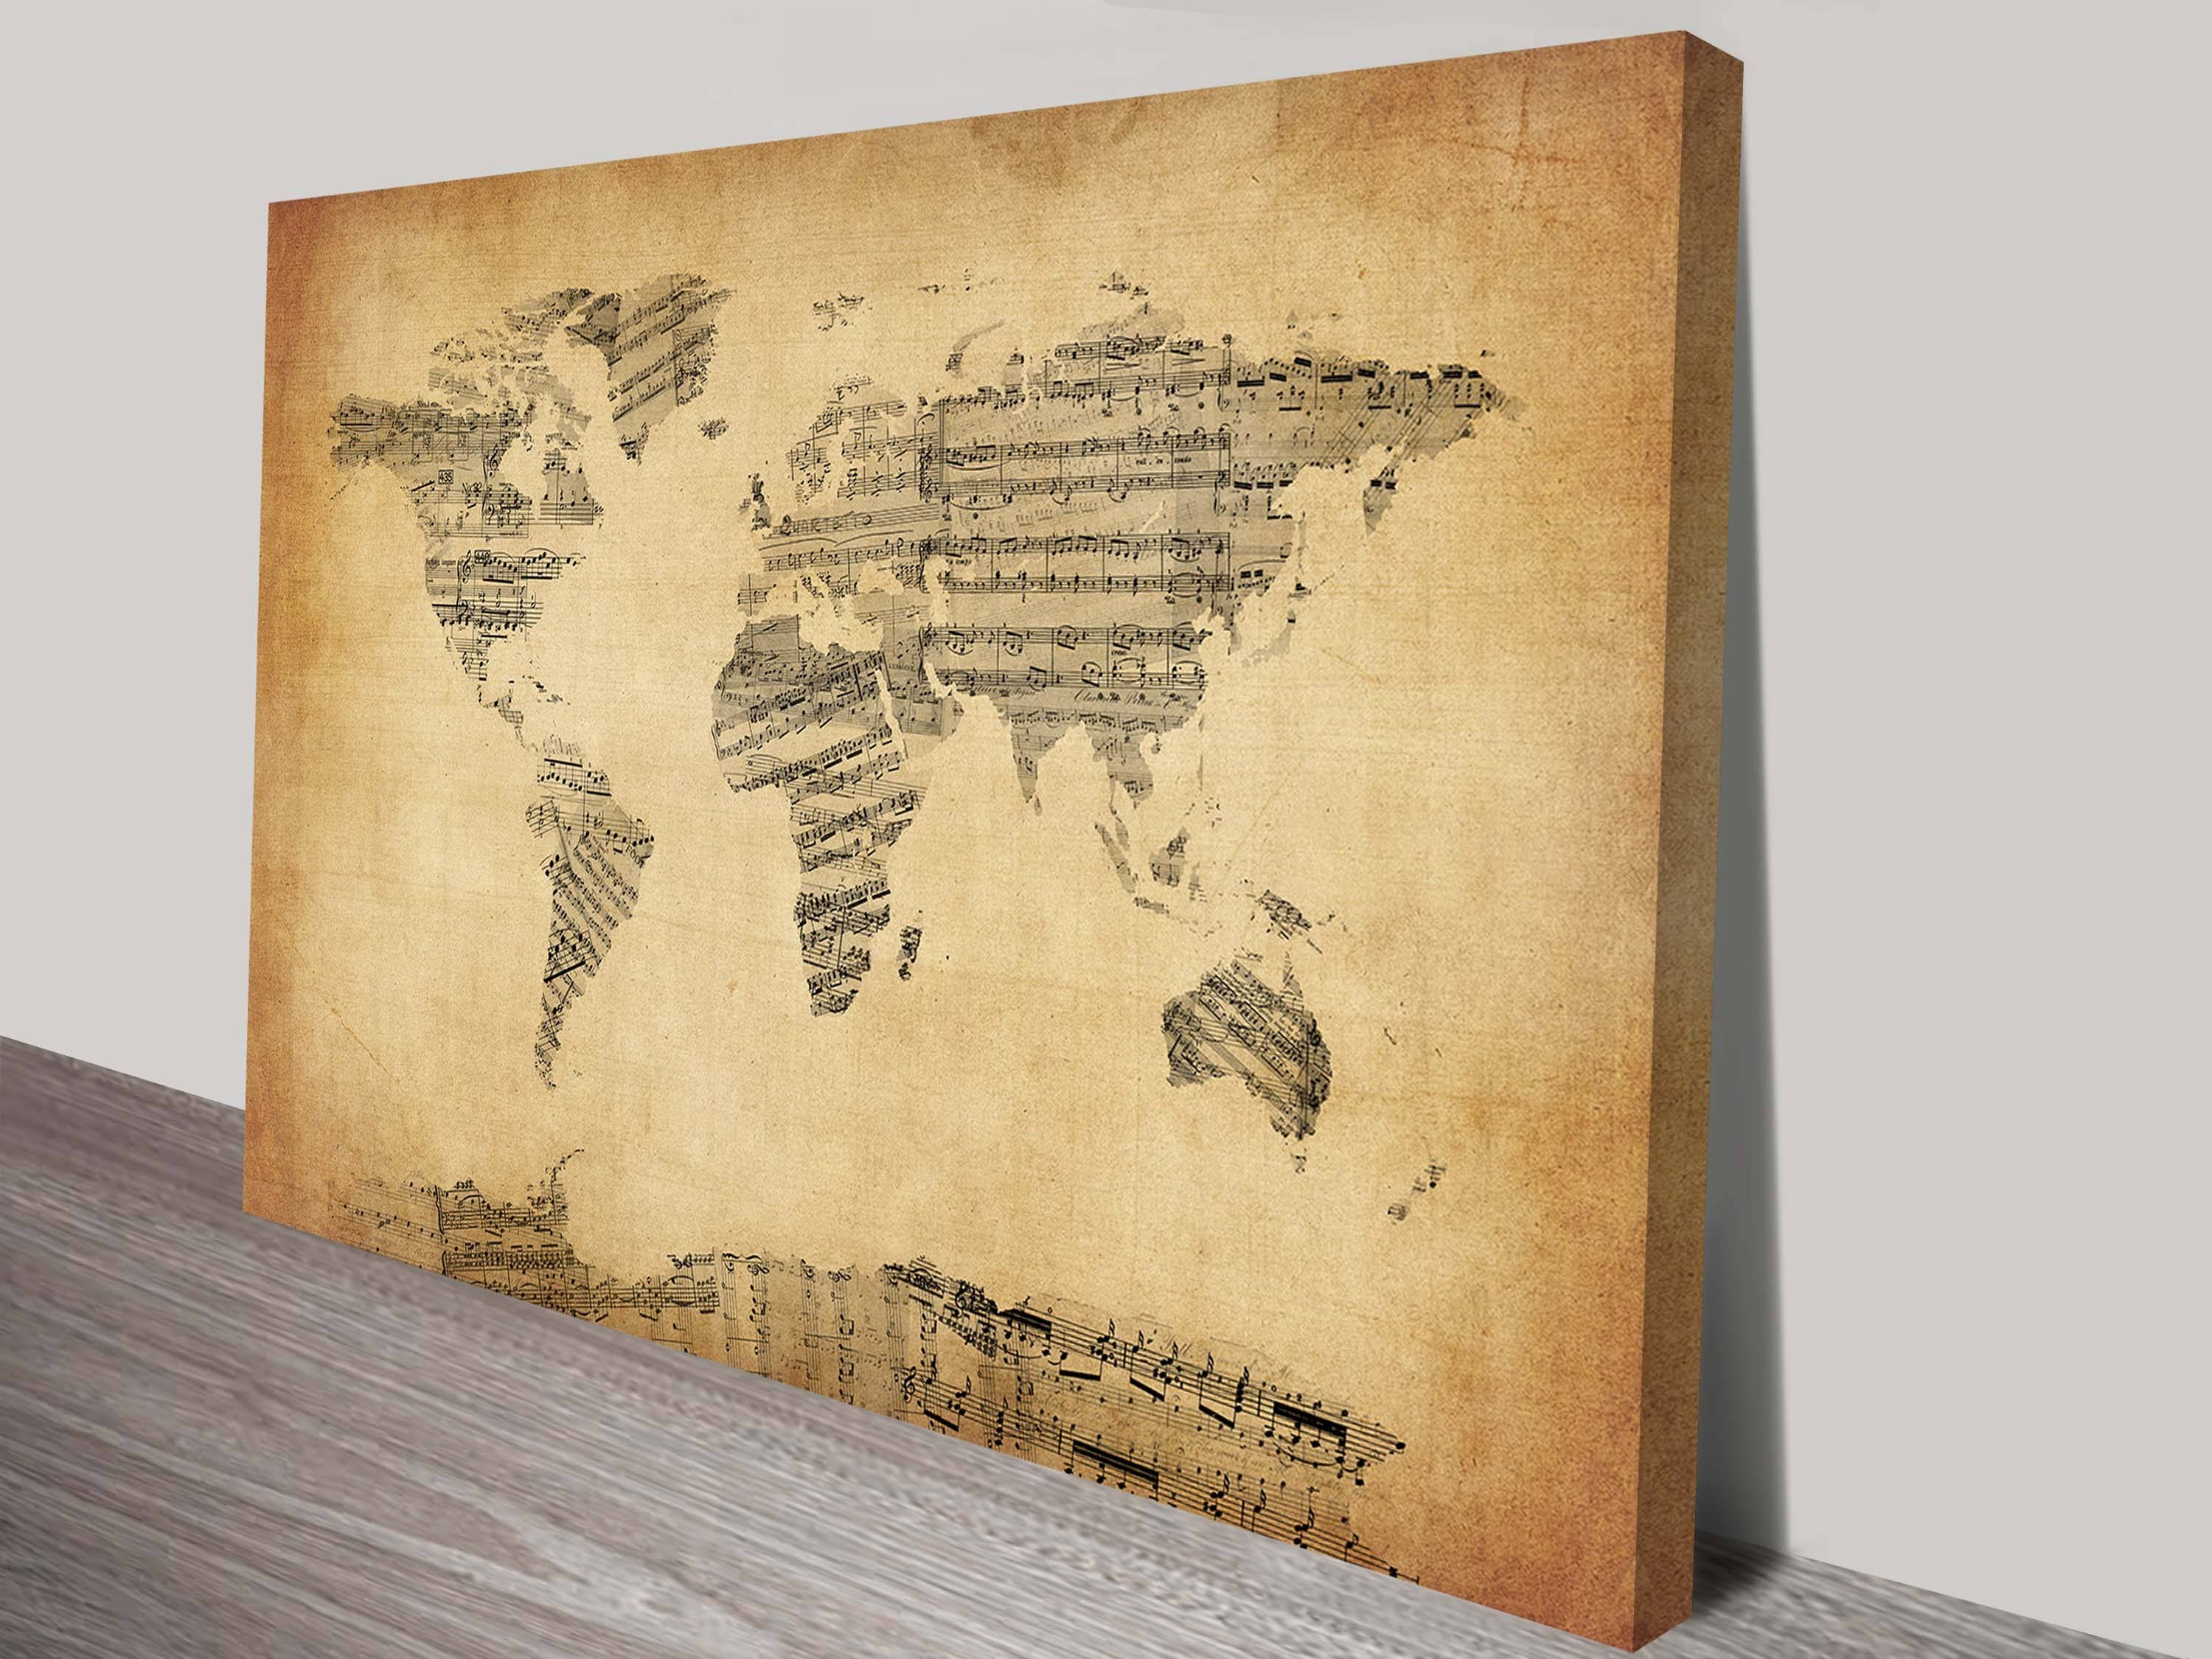 World Map Vintage Sheet Music Artmichael Tompsett With Regard To Latest Vintage World Map Wall Art (View 16 of 20)